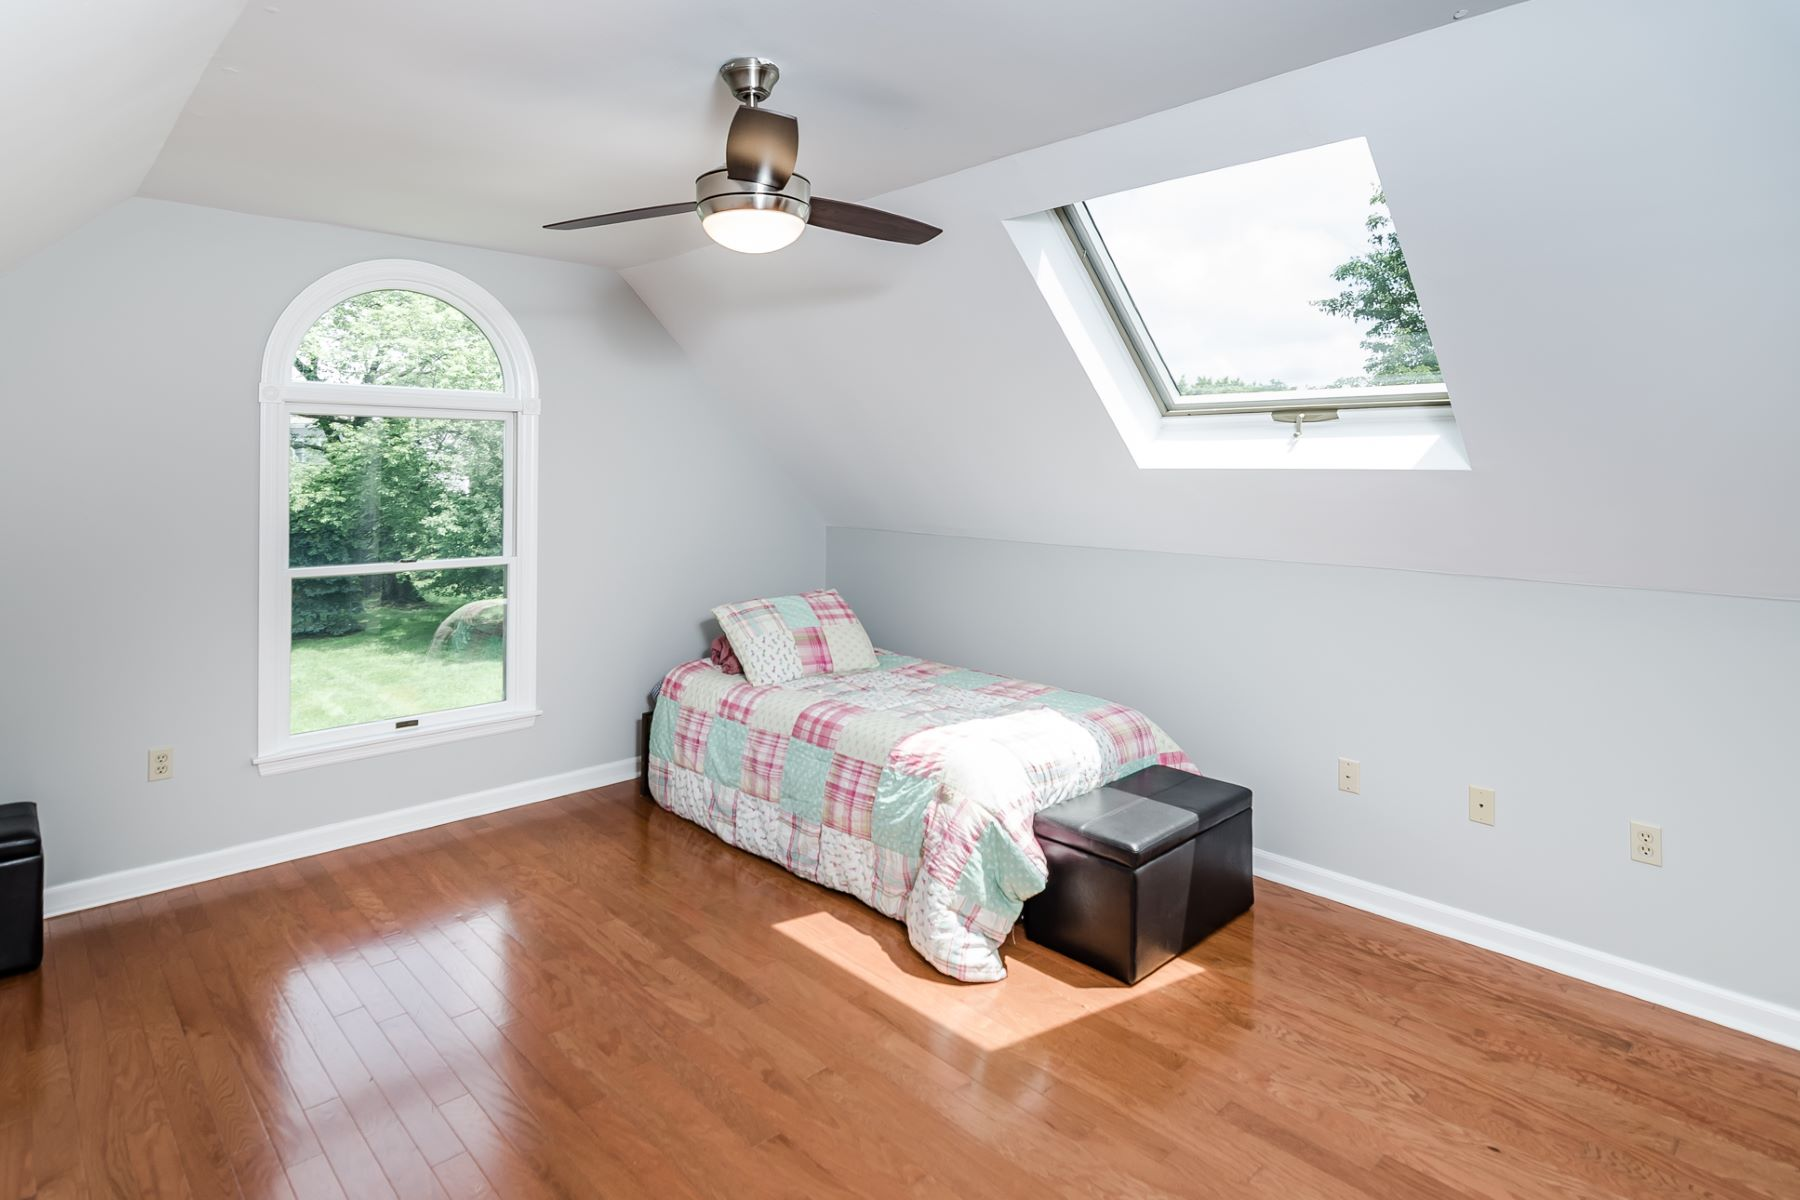 Additional photo for property listing at Sparkling Cranbury Colonial with a Modern Flow 44 Old Trenton Road, Cranbury, New Jersey 08512 United States